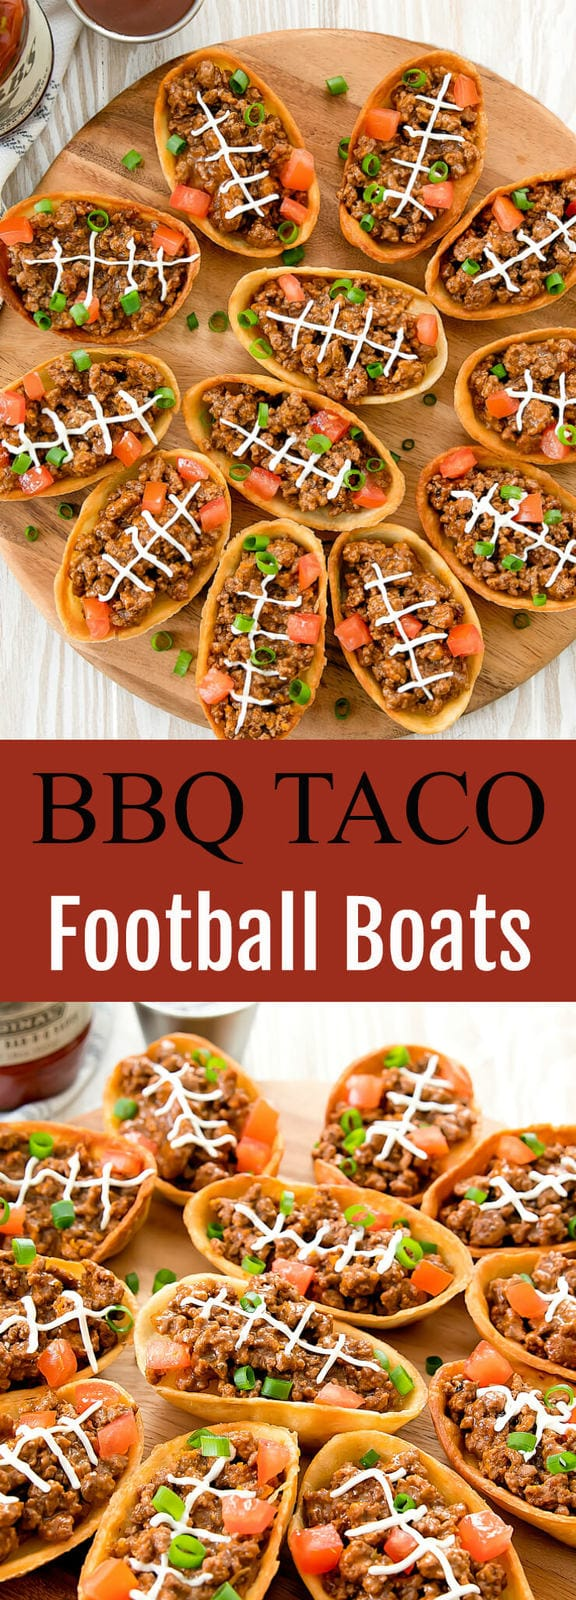 BBQ Taco Football Boats. Crispy taco boats piped with laces to resemble footballs. Perfect for tailgating or a game day party.